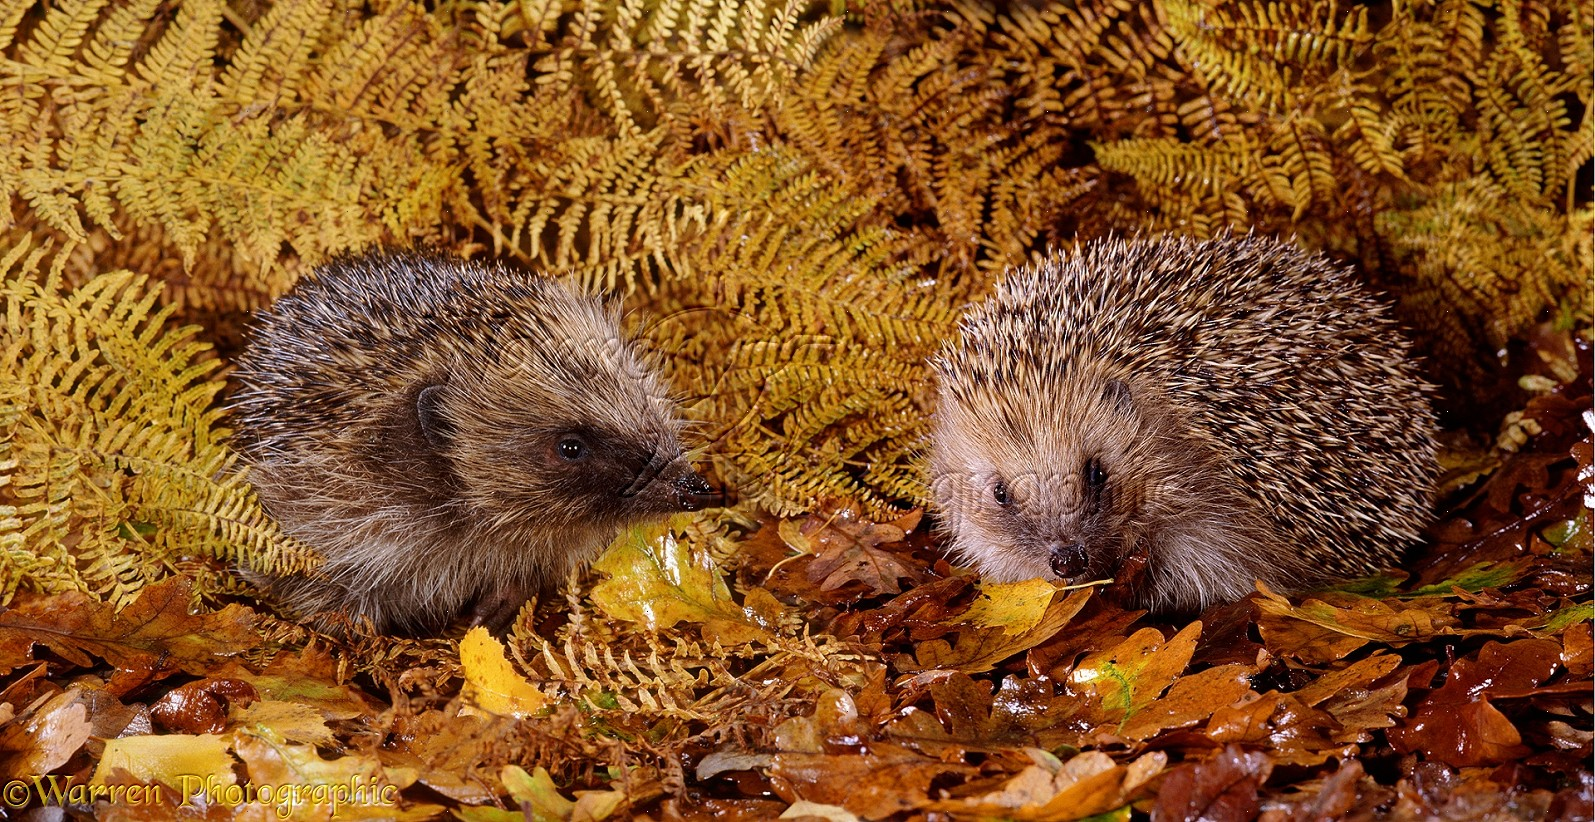 http://www.warrenphotographic.co.uk/photography/bigs/13509-Hedgehogs.jpg